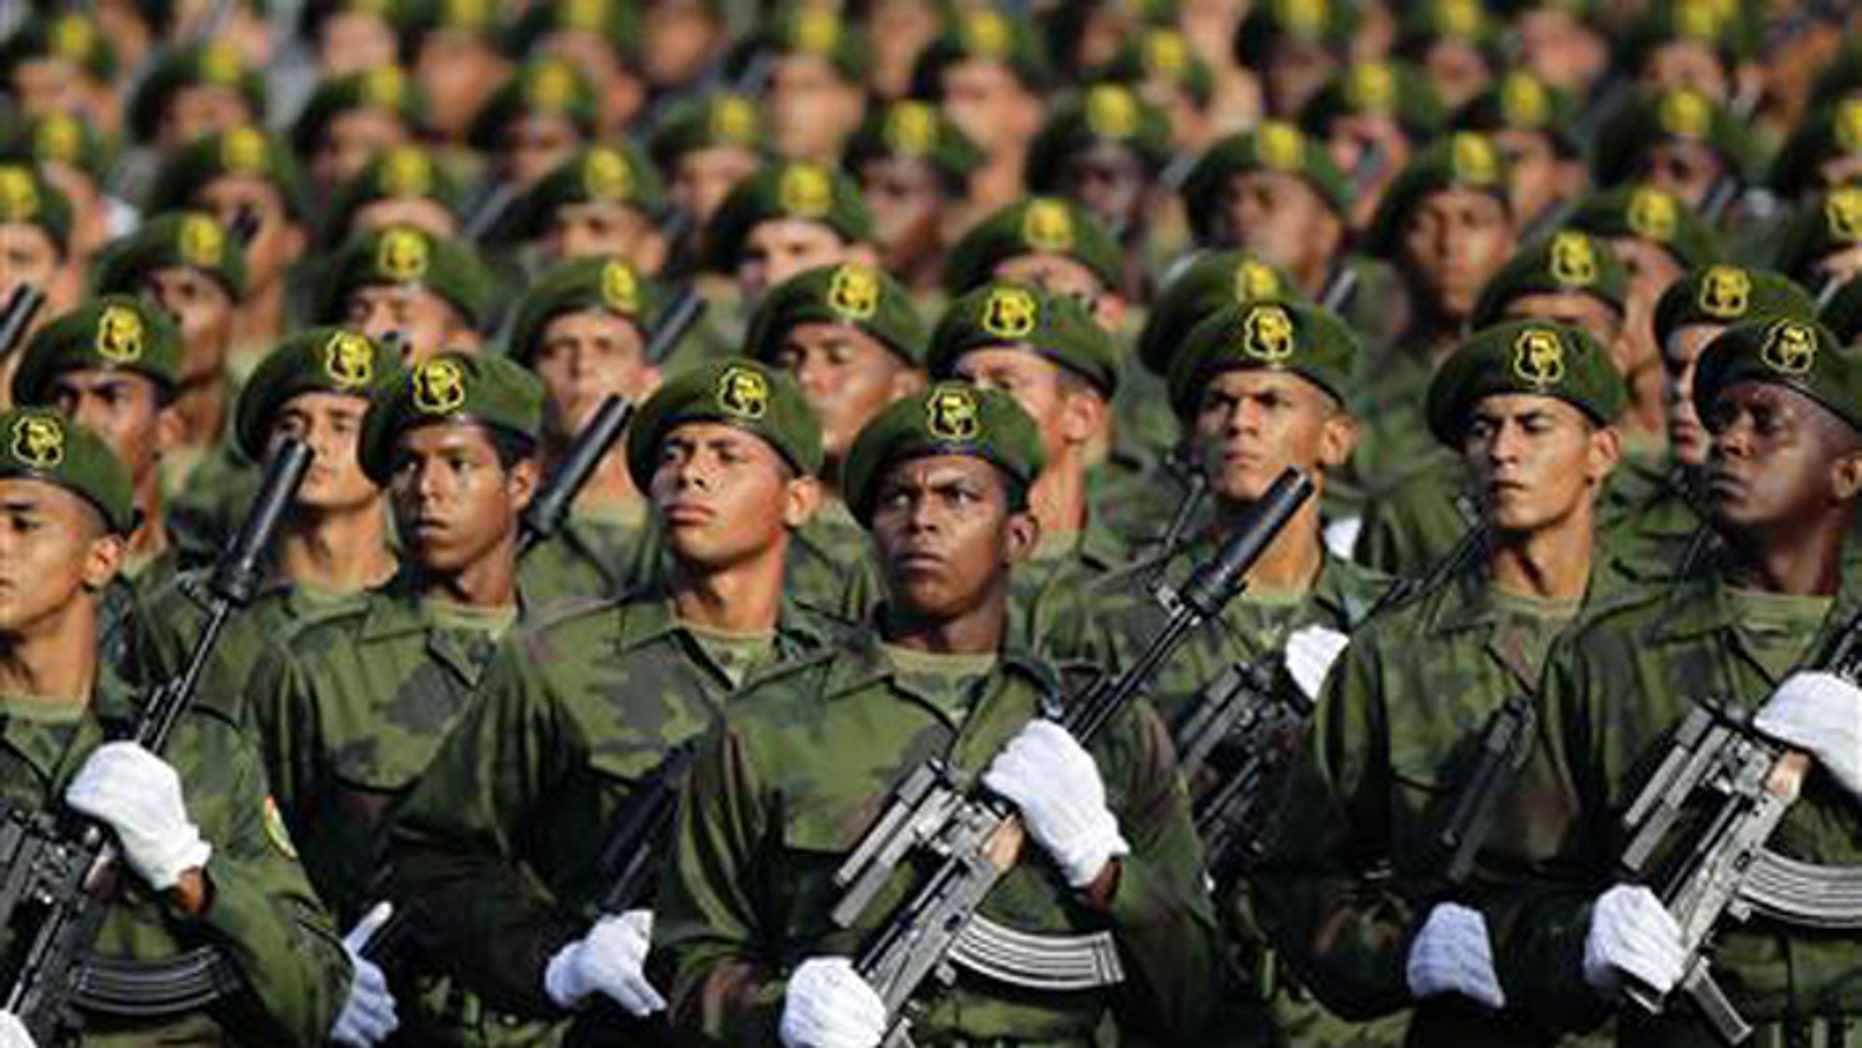 Cuba's army is small, but highly trained, according to military experts. (Reuters)